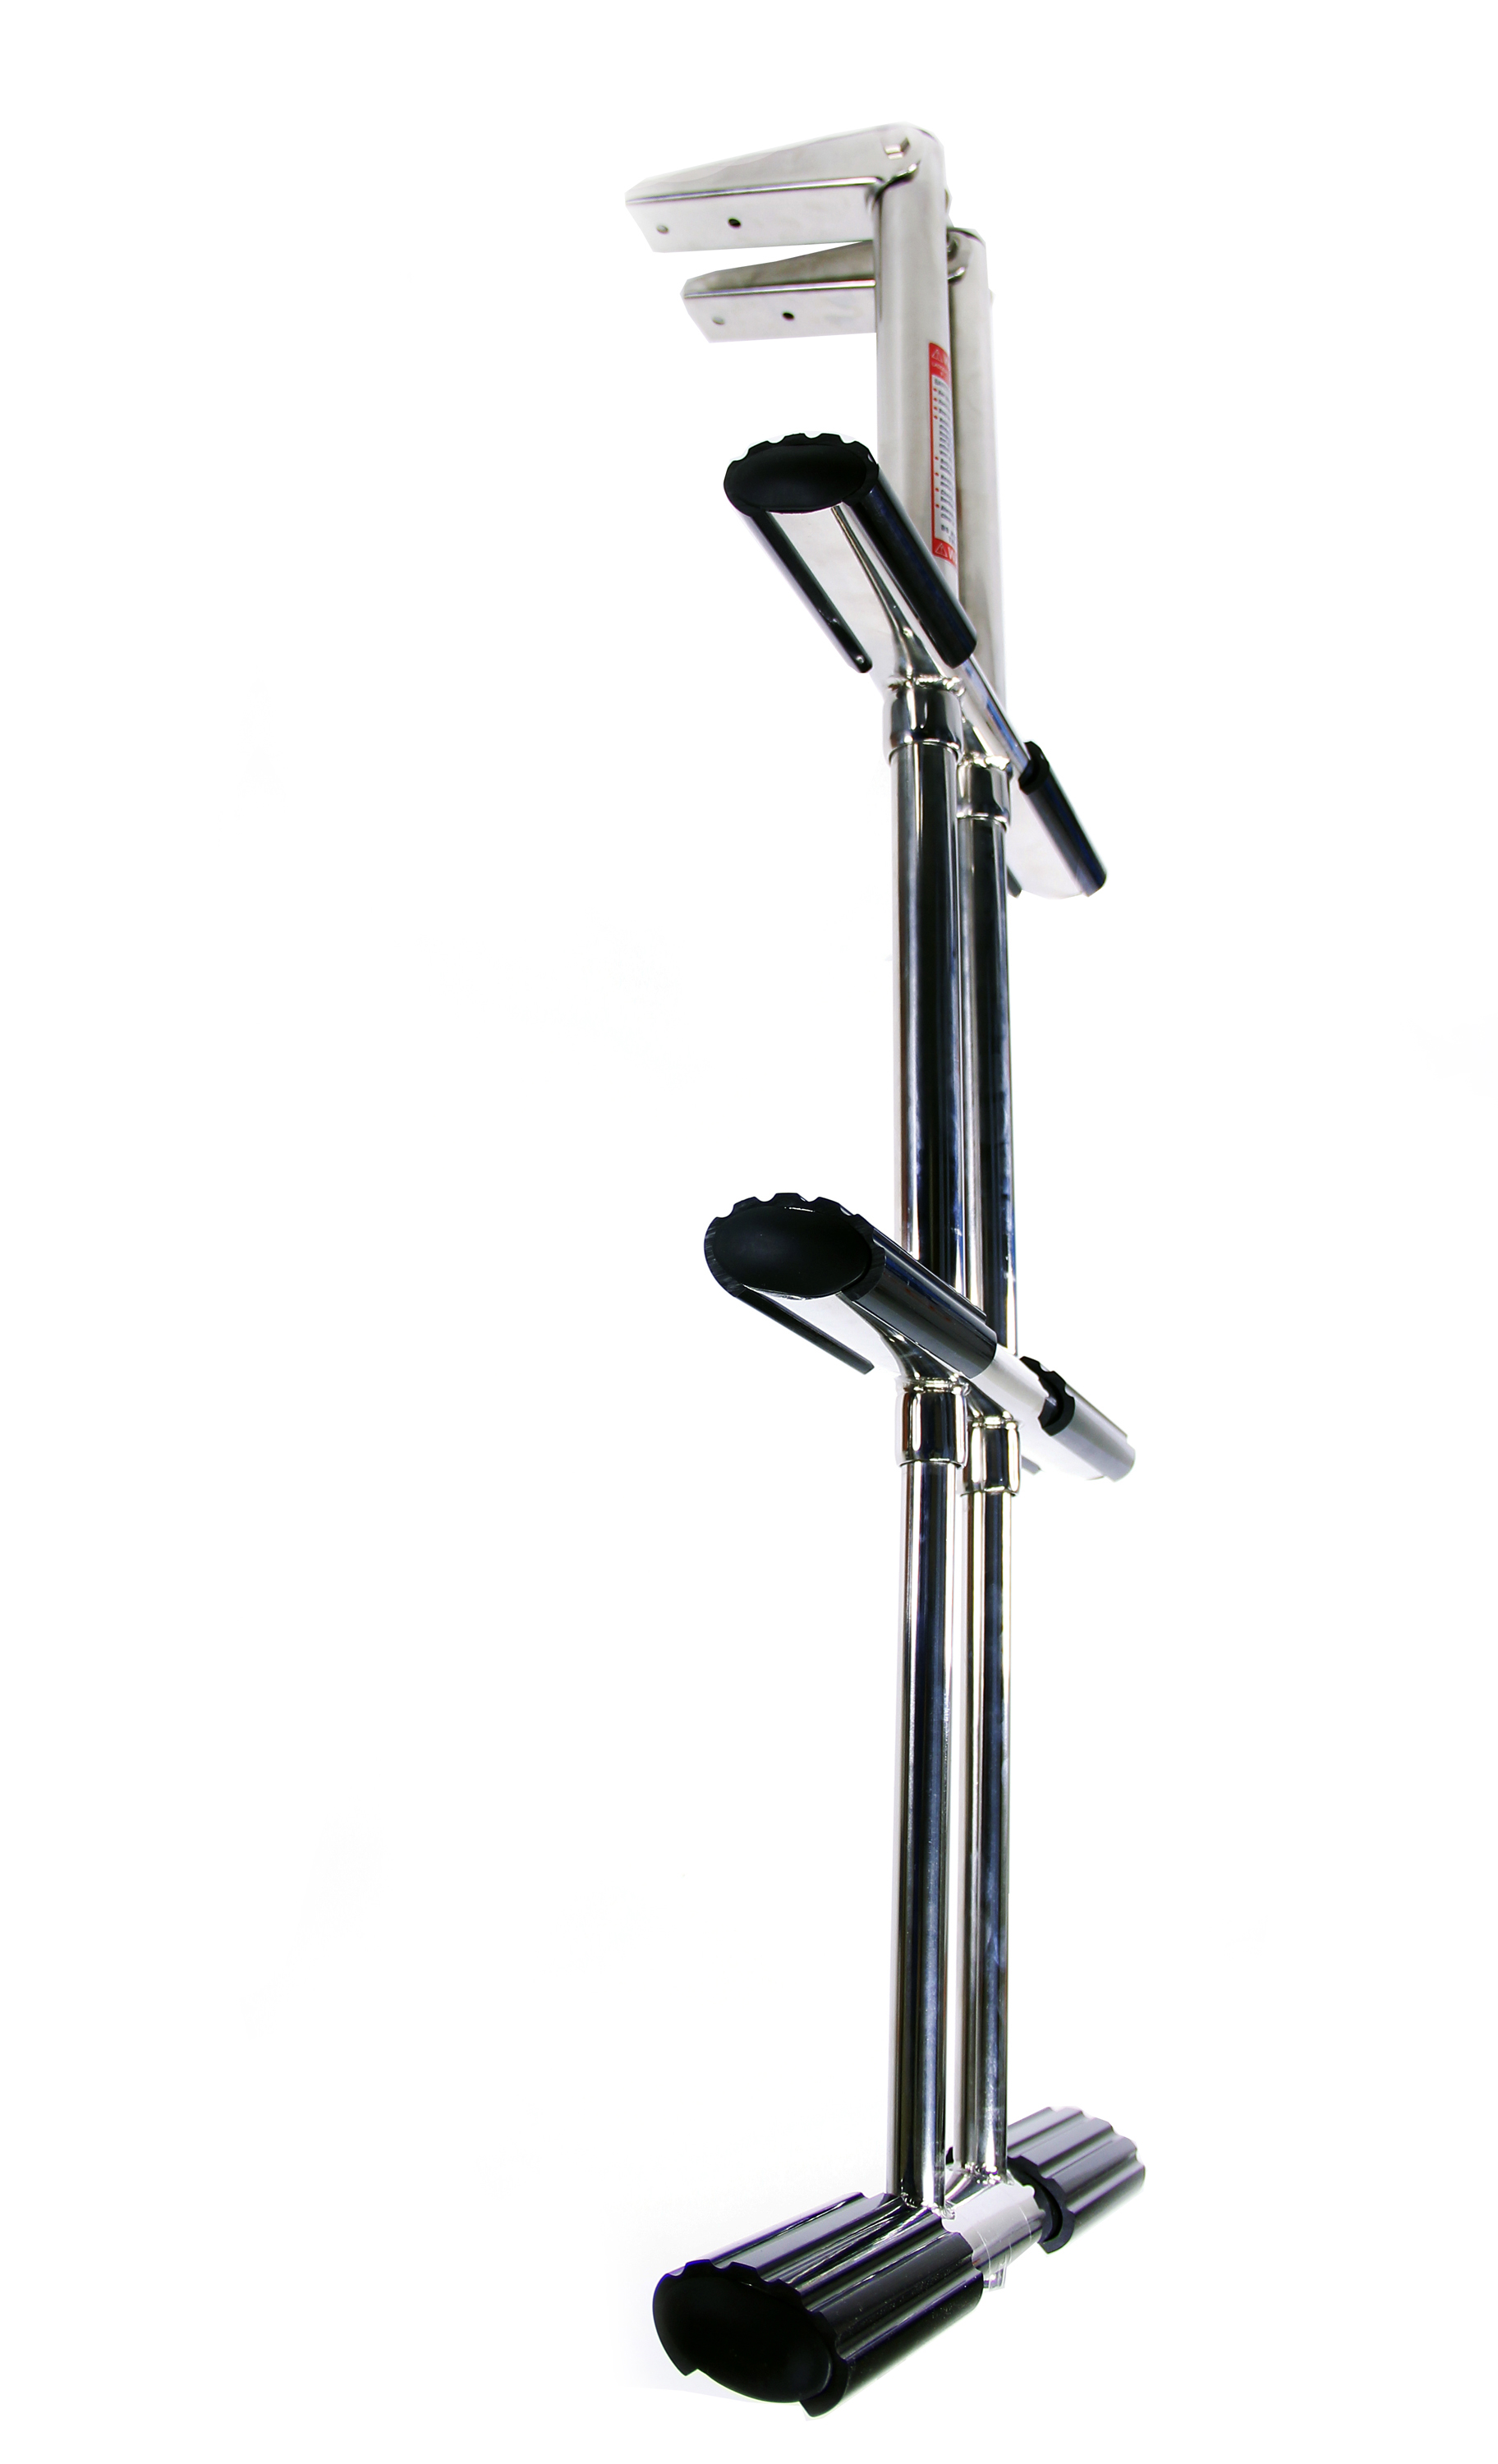 3 Step Stainless Steel Telescopic Boat Dive Ladder Marine